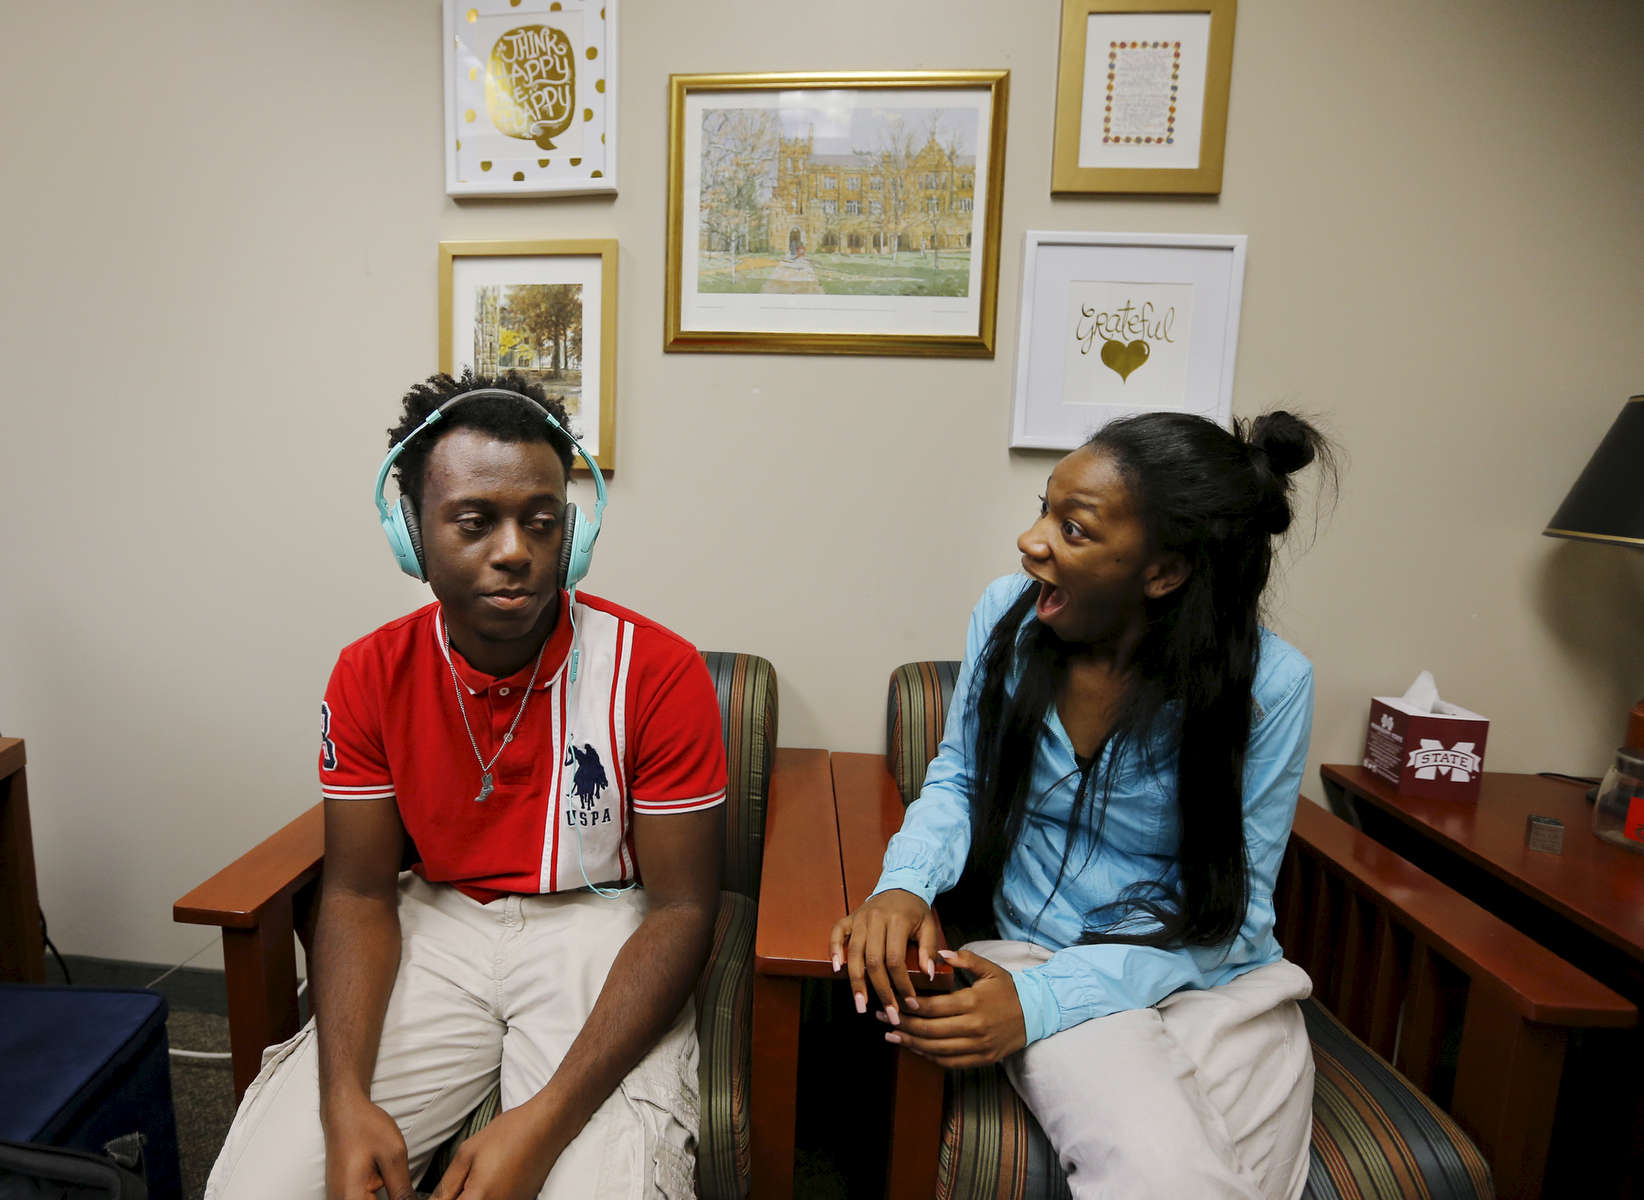 May 9, 2016 - Paige Madison (right) reacts as she learns that Donovan Borum was offered a full-ride scholarship to Wake Forest University. Neither Madison nor Borum are ending up at their first college of choice, Spelman College and Purdue University respectively, after other schools made finical offers they could not refuse. (Mike Brown/The Commercial Appeal)